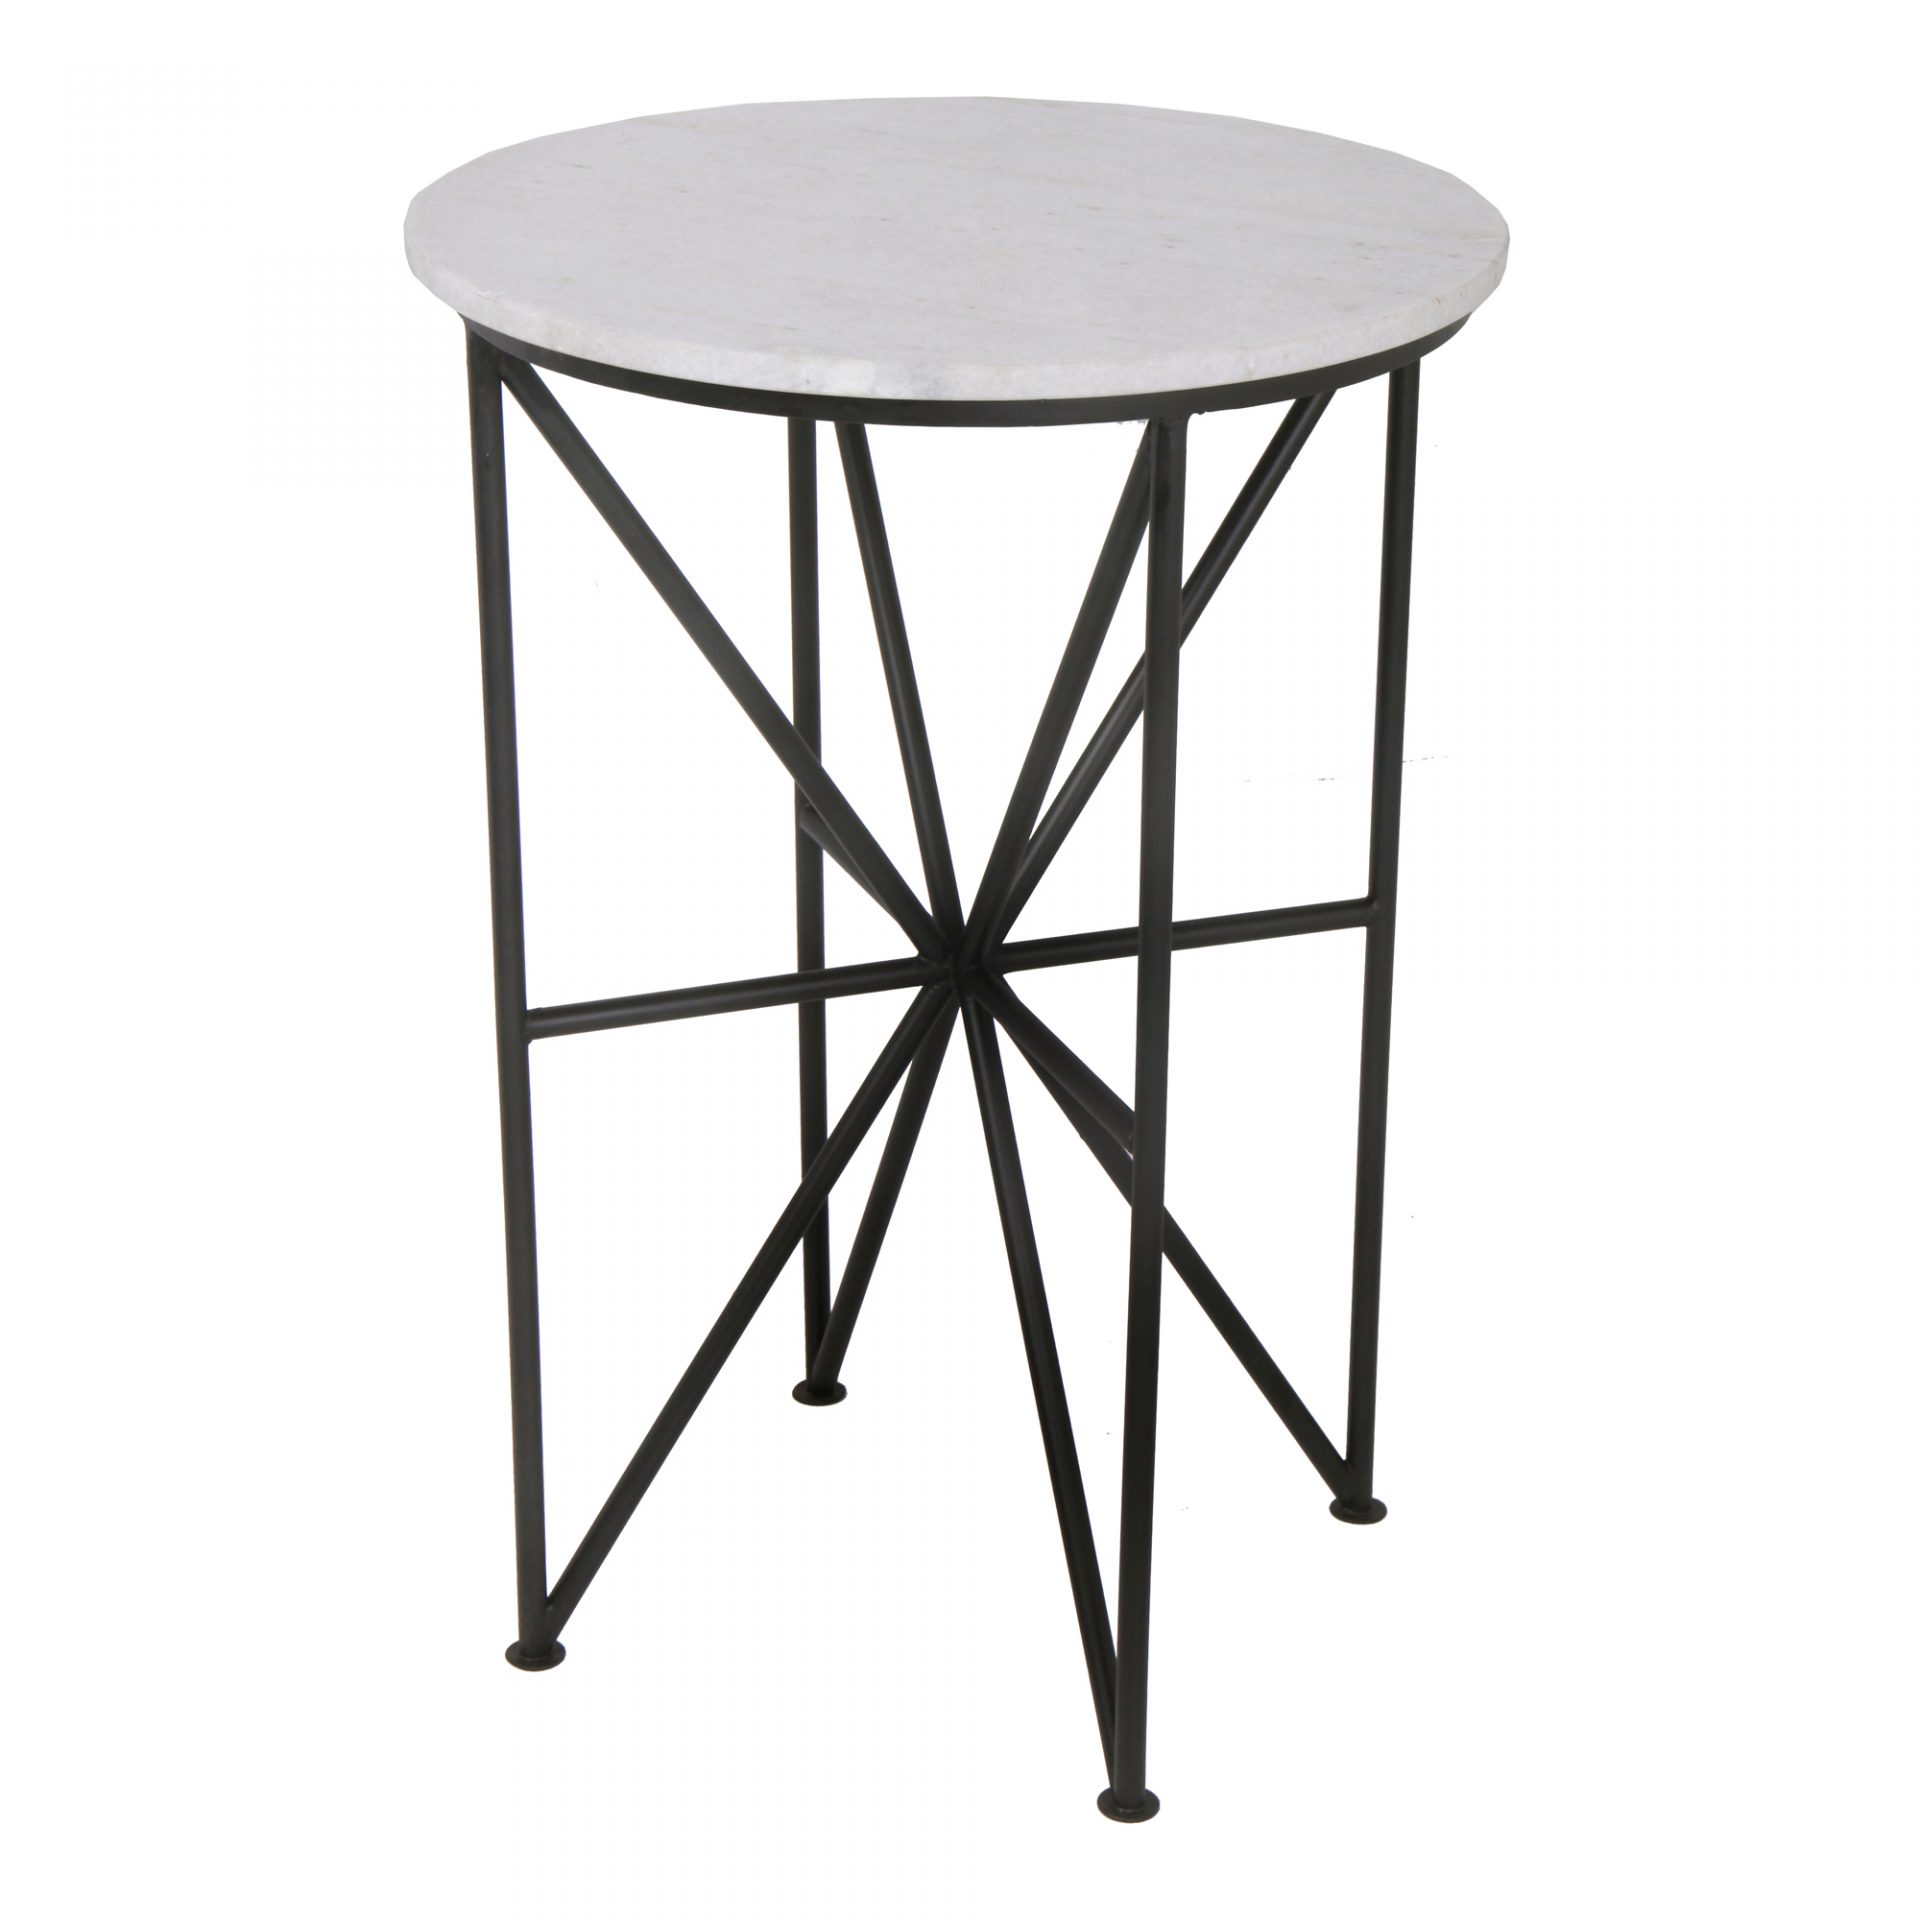 accent tables categories moe whole black marble table quadrant glass legs modern nightstand lamps narrow console with shelves kids bedside pier one mirrored furniture diy crescent